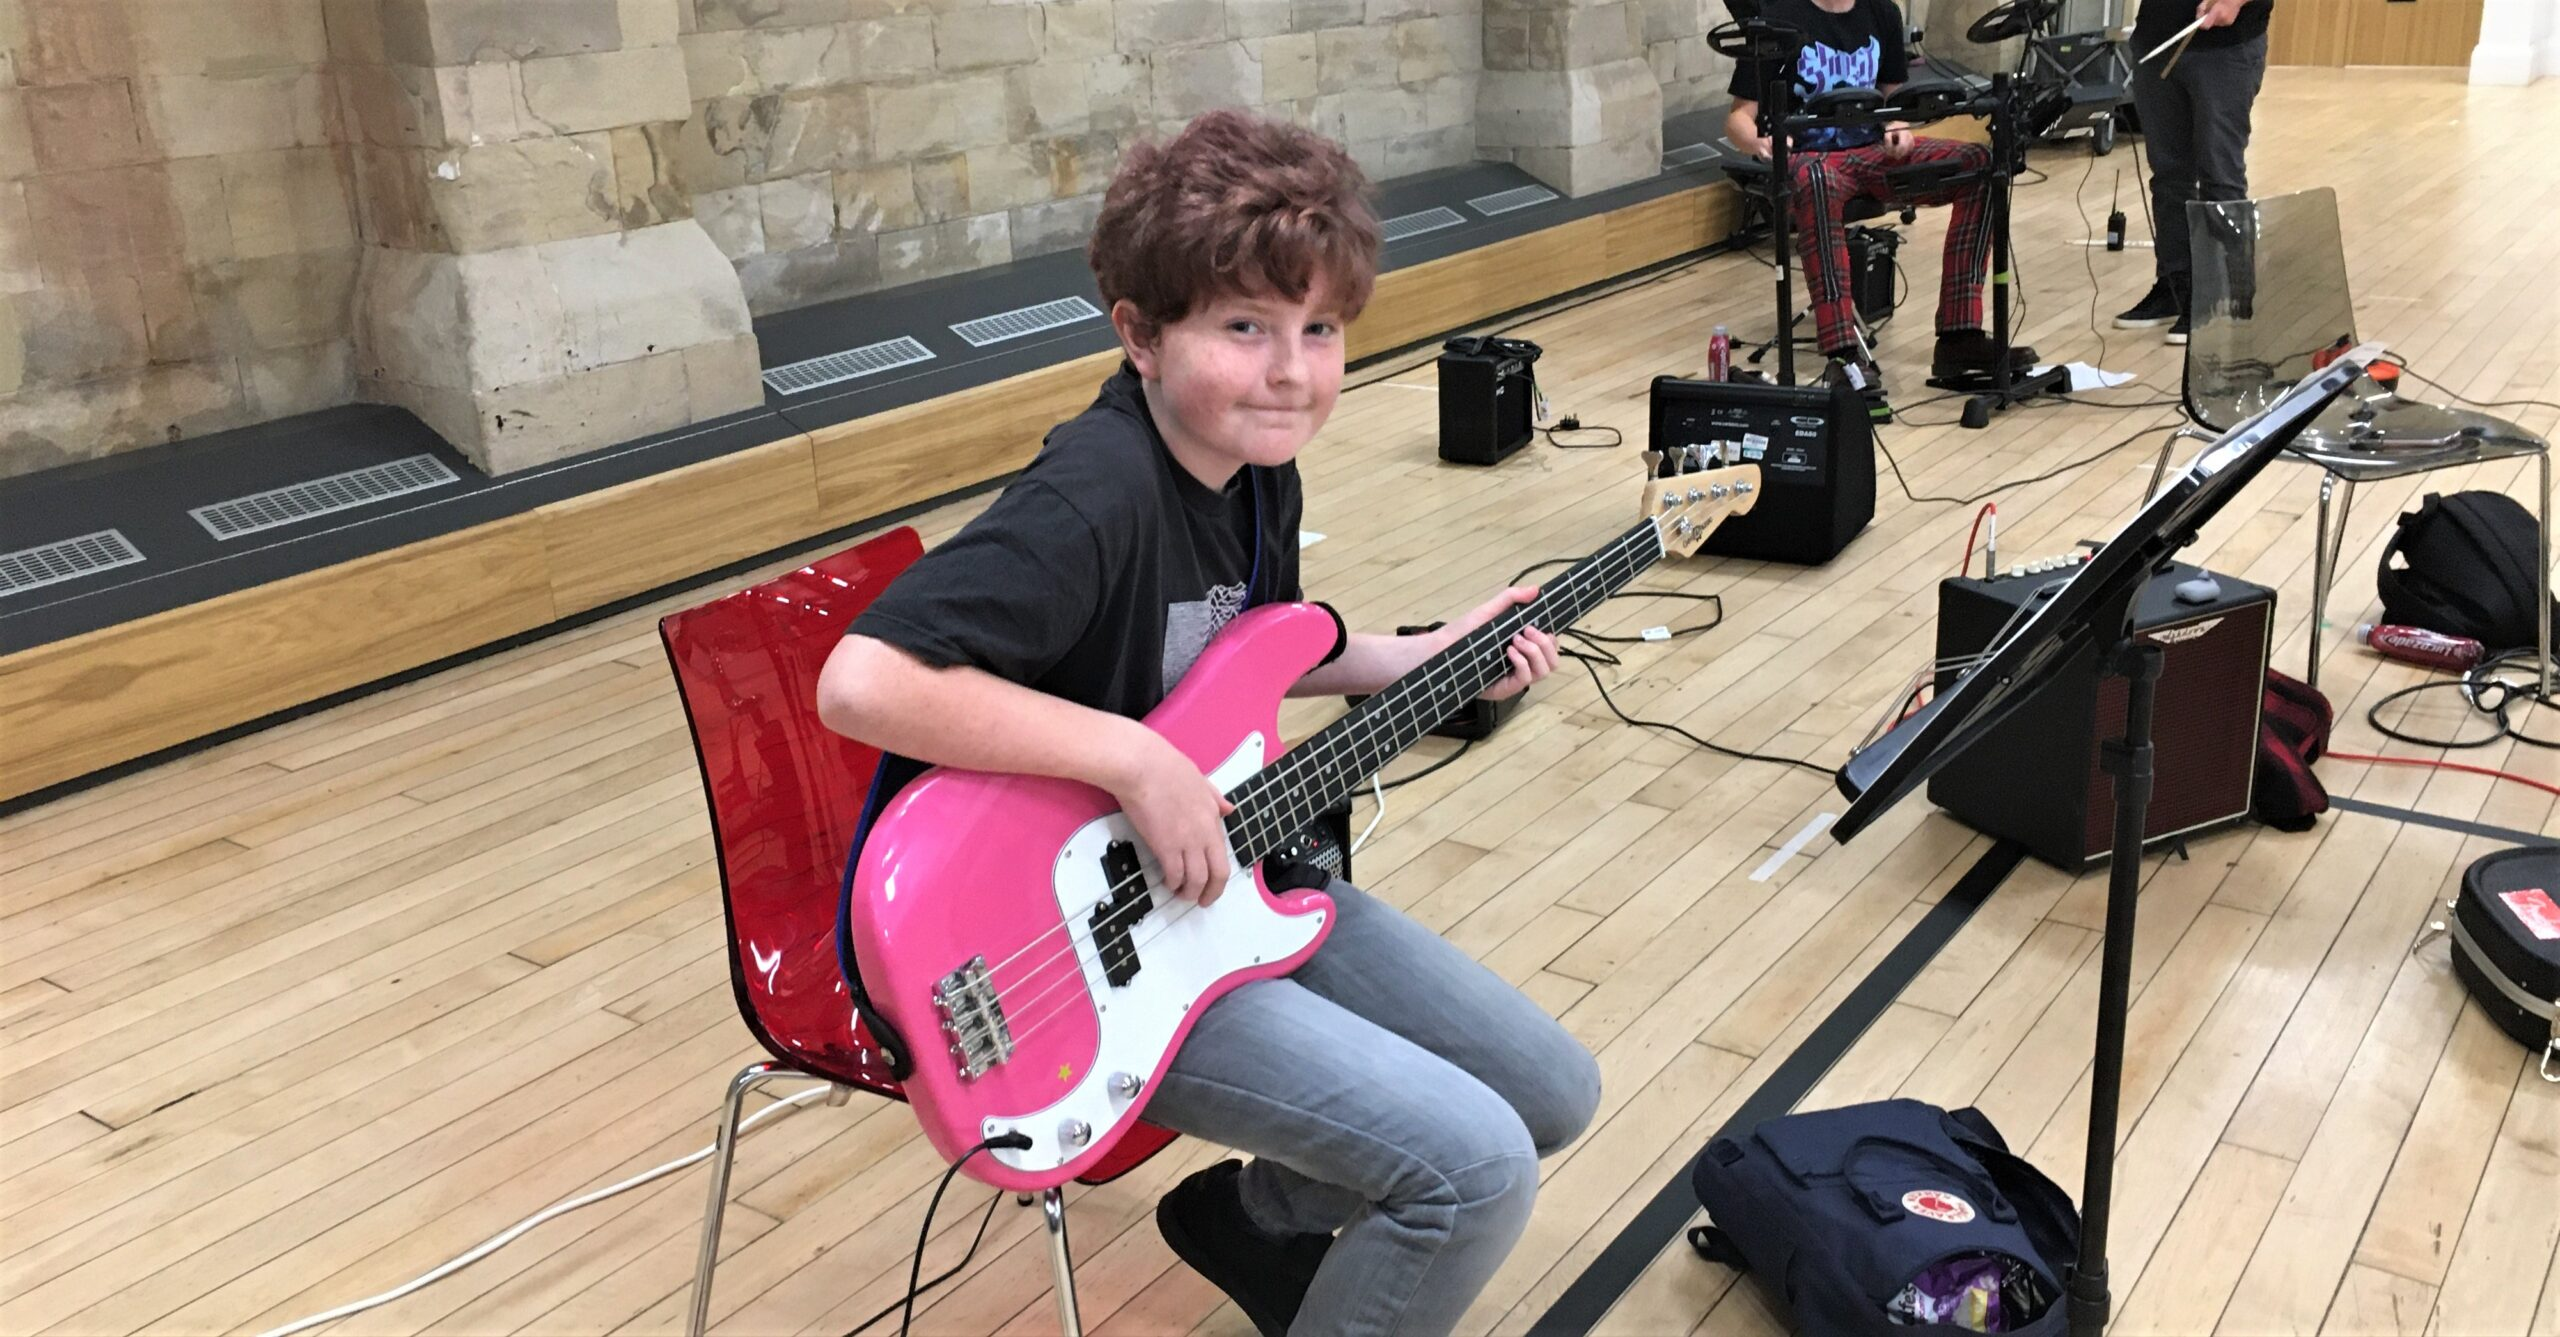 A boy looks at the camera whilst holding a pink bass guitar during a music session